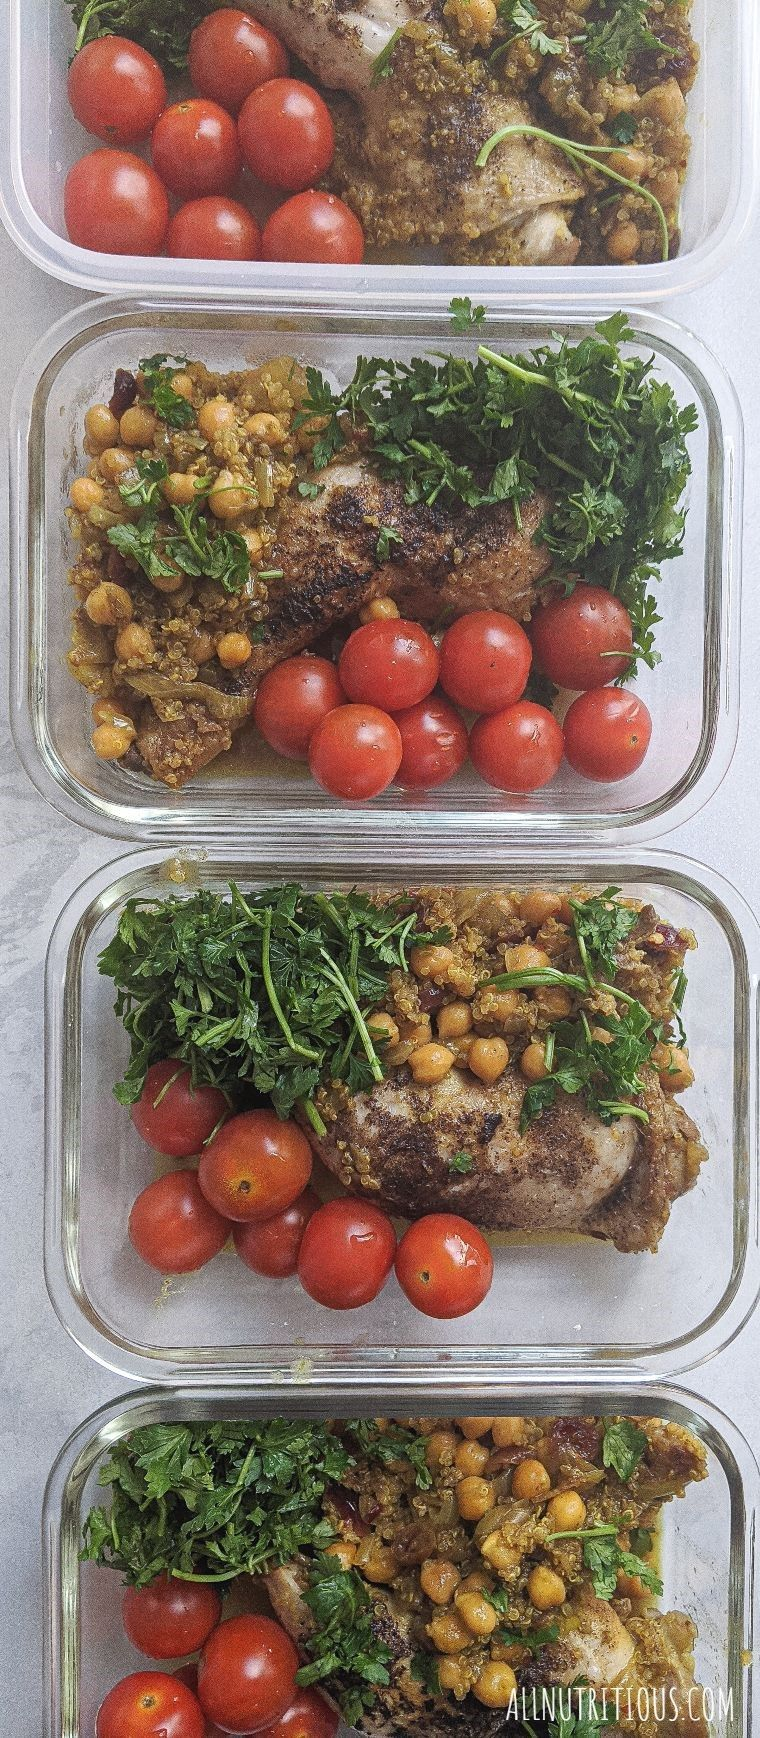 chicken leg meal preps multiple containers